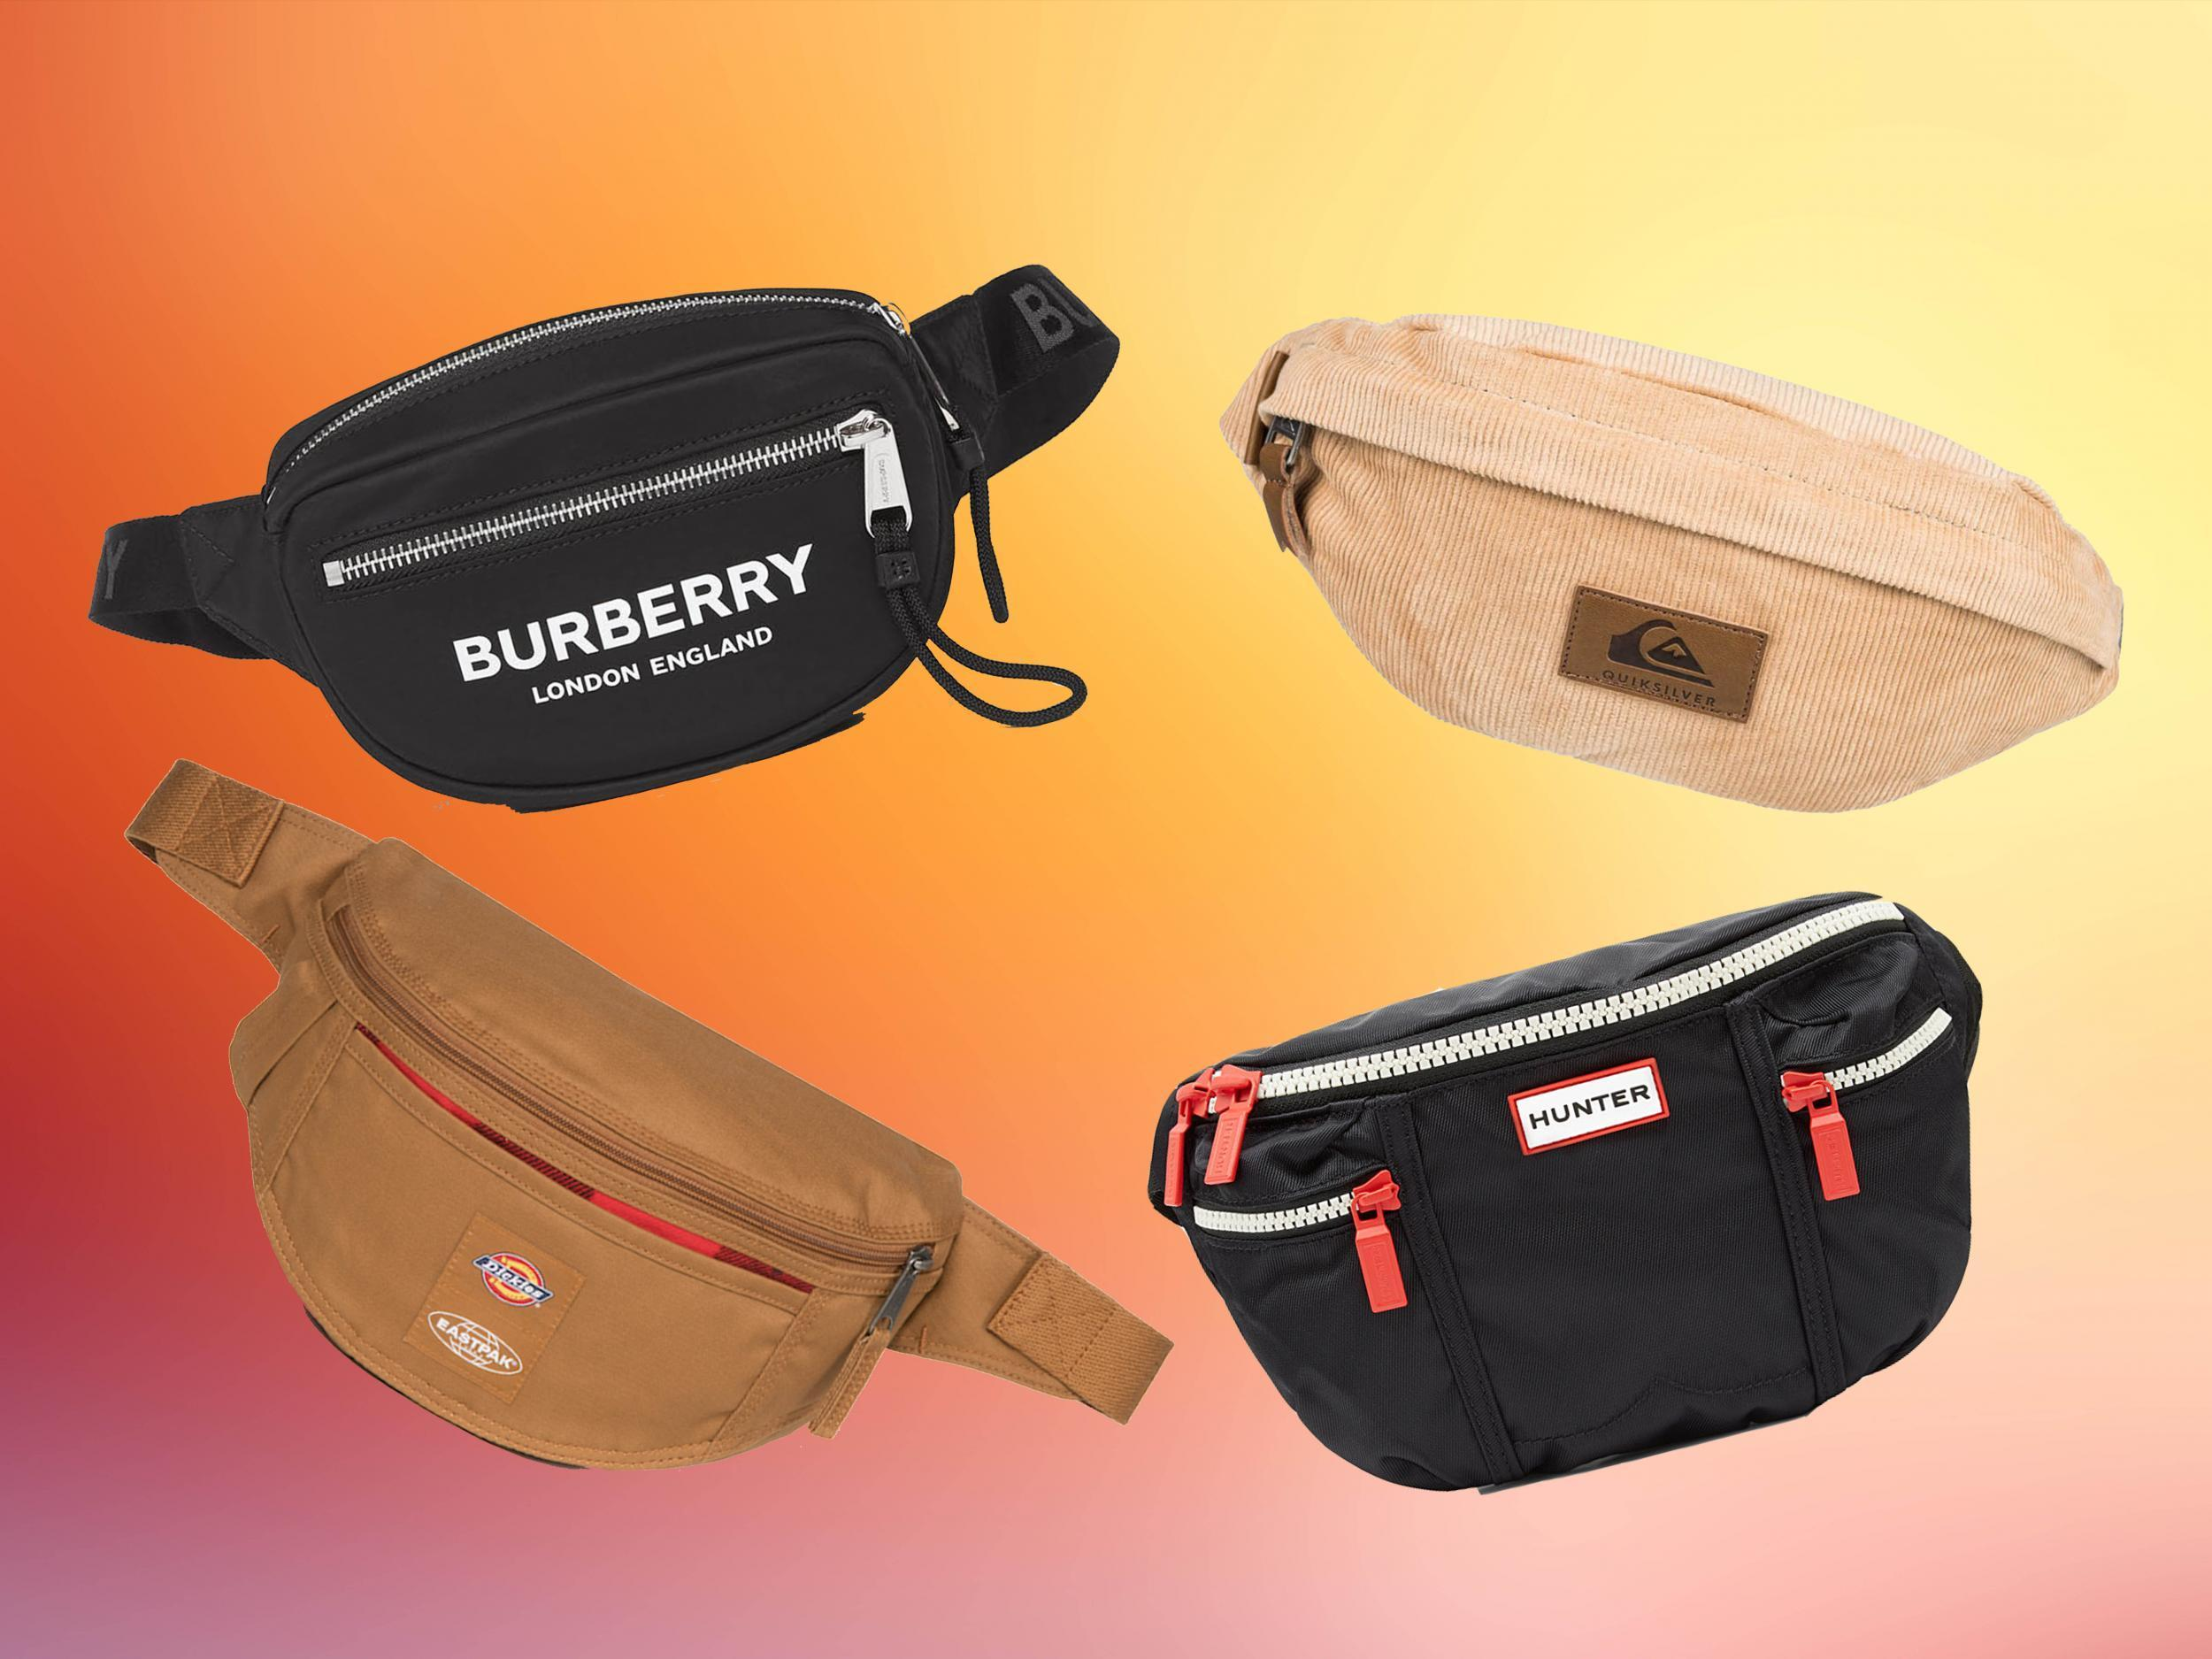 34c62e701 Best bum bag: Choose from carriers that are fit for festivals, travelling  and hiking